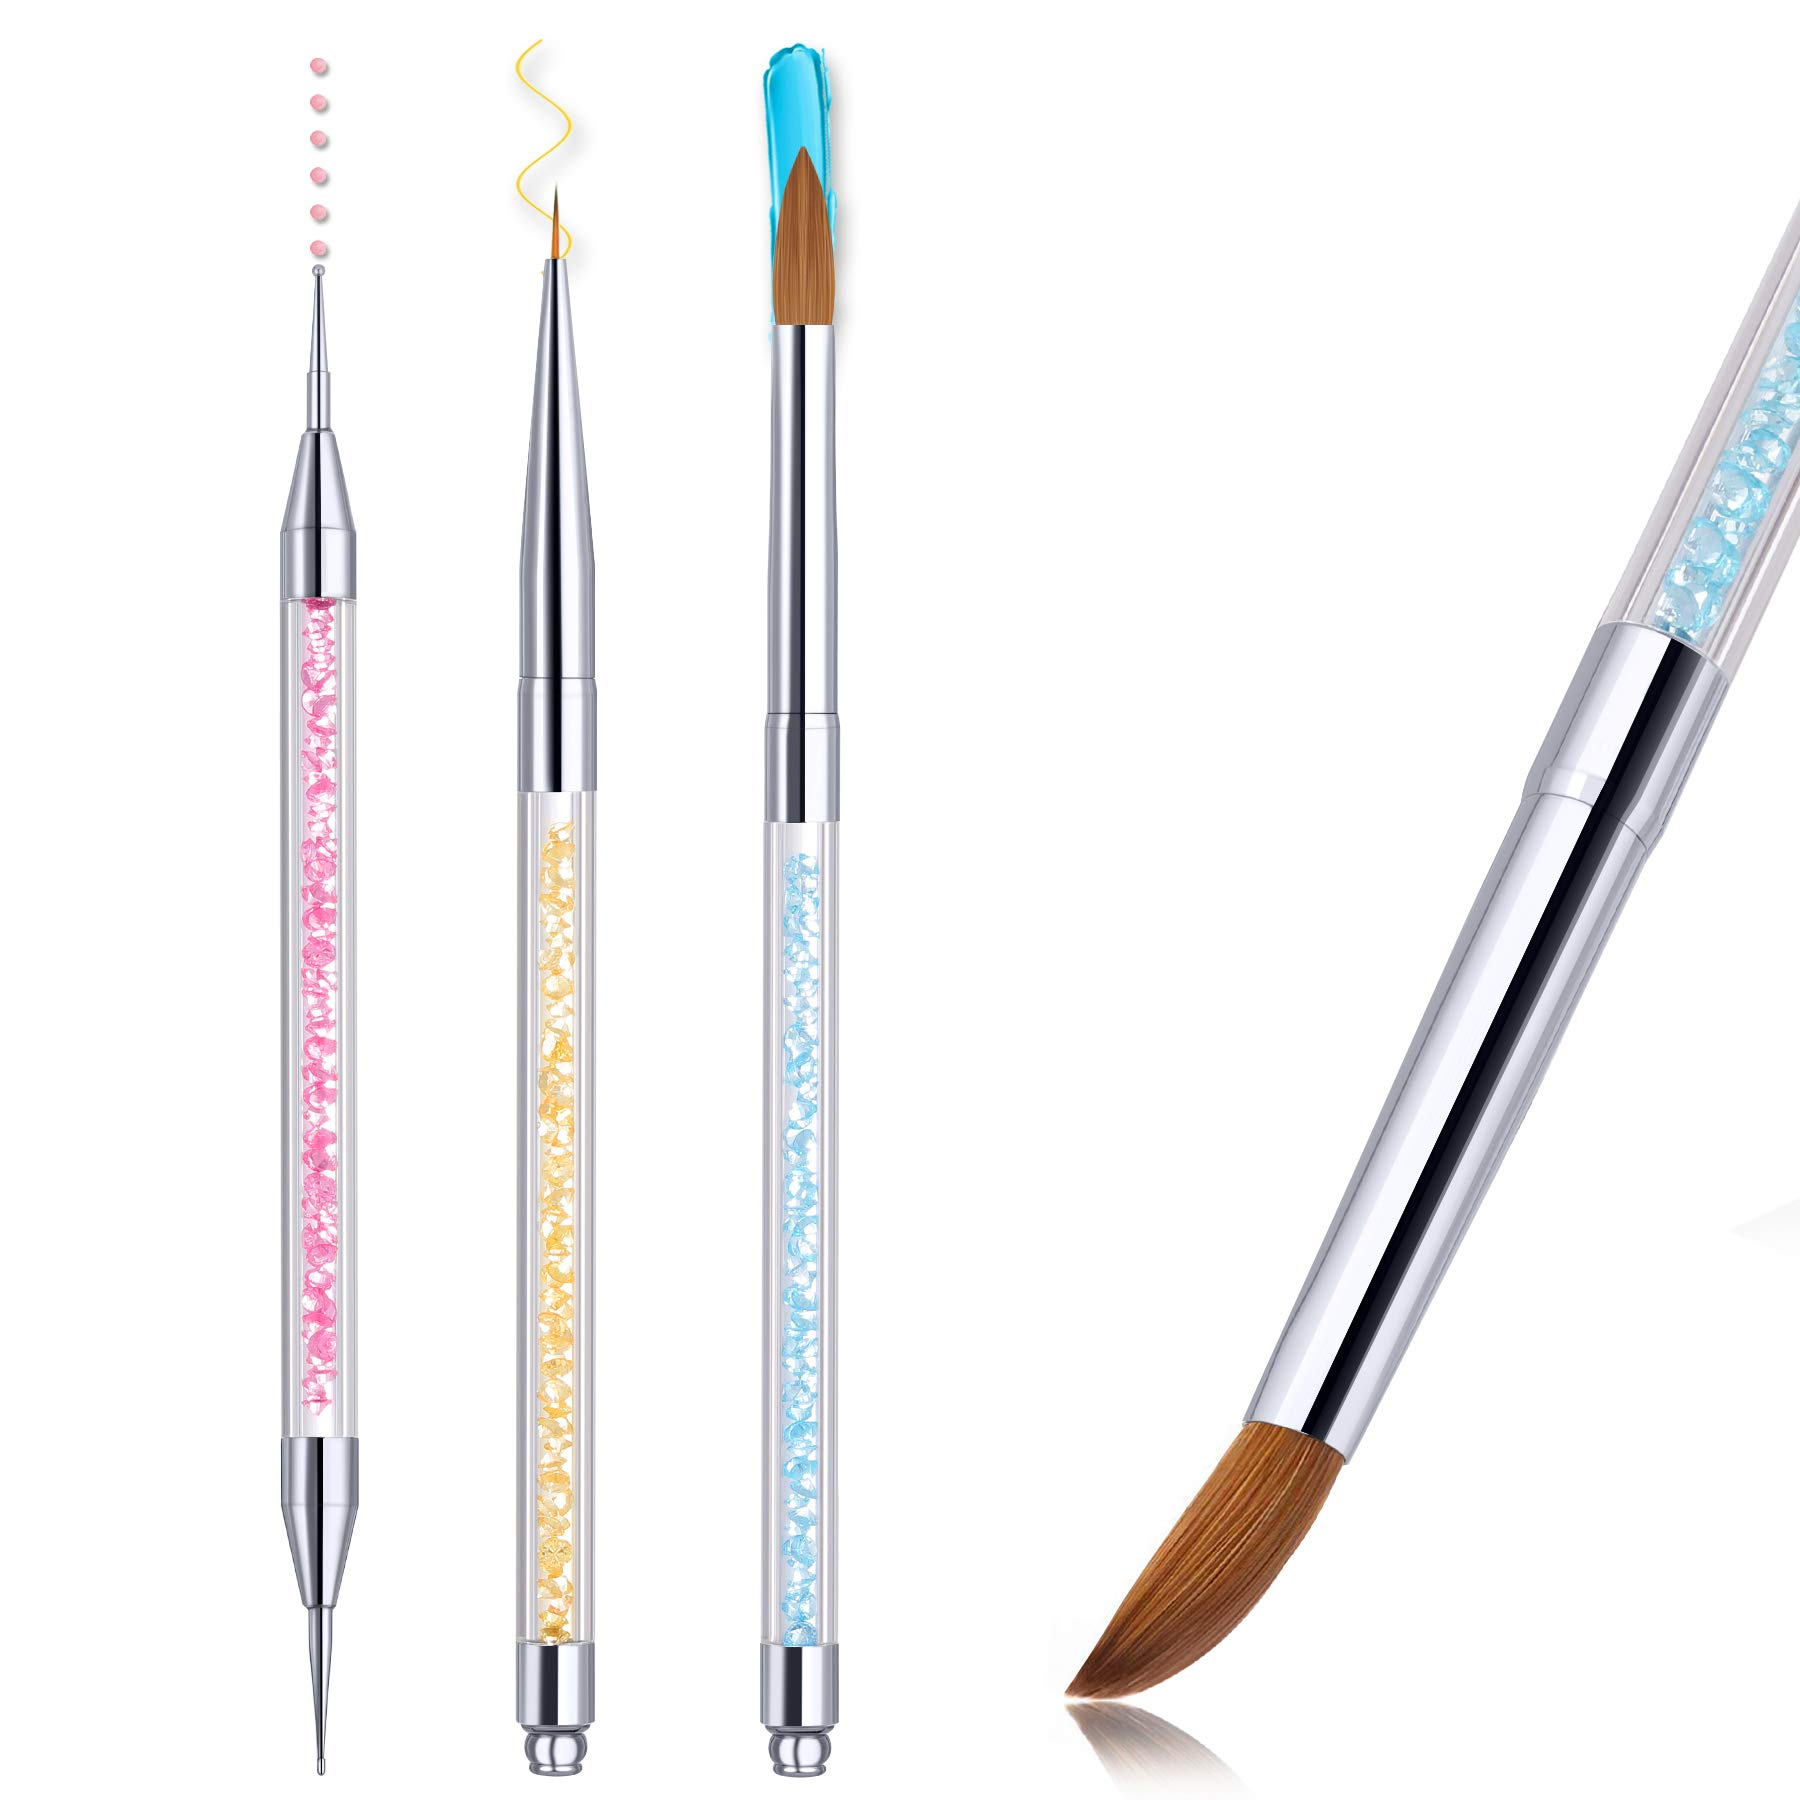 100% Kolinsky Sable Nail Brush, Larbois Acrylic Nail Art Brushes Set, Professional Application Lines Dotting Painting Drawing for Home and Salon Use Tools, 3 Pcs # Size 8